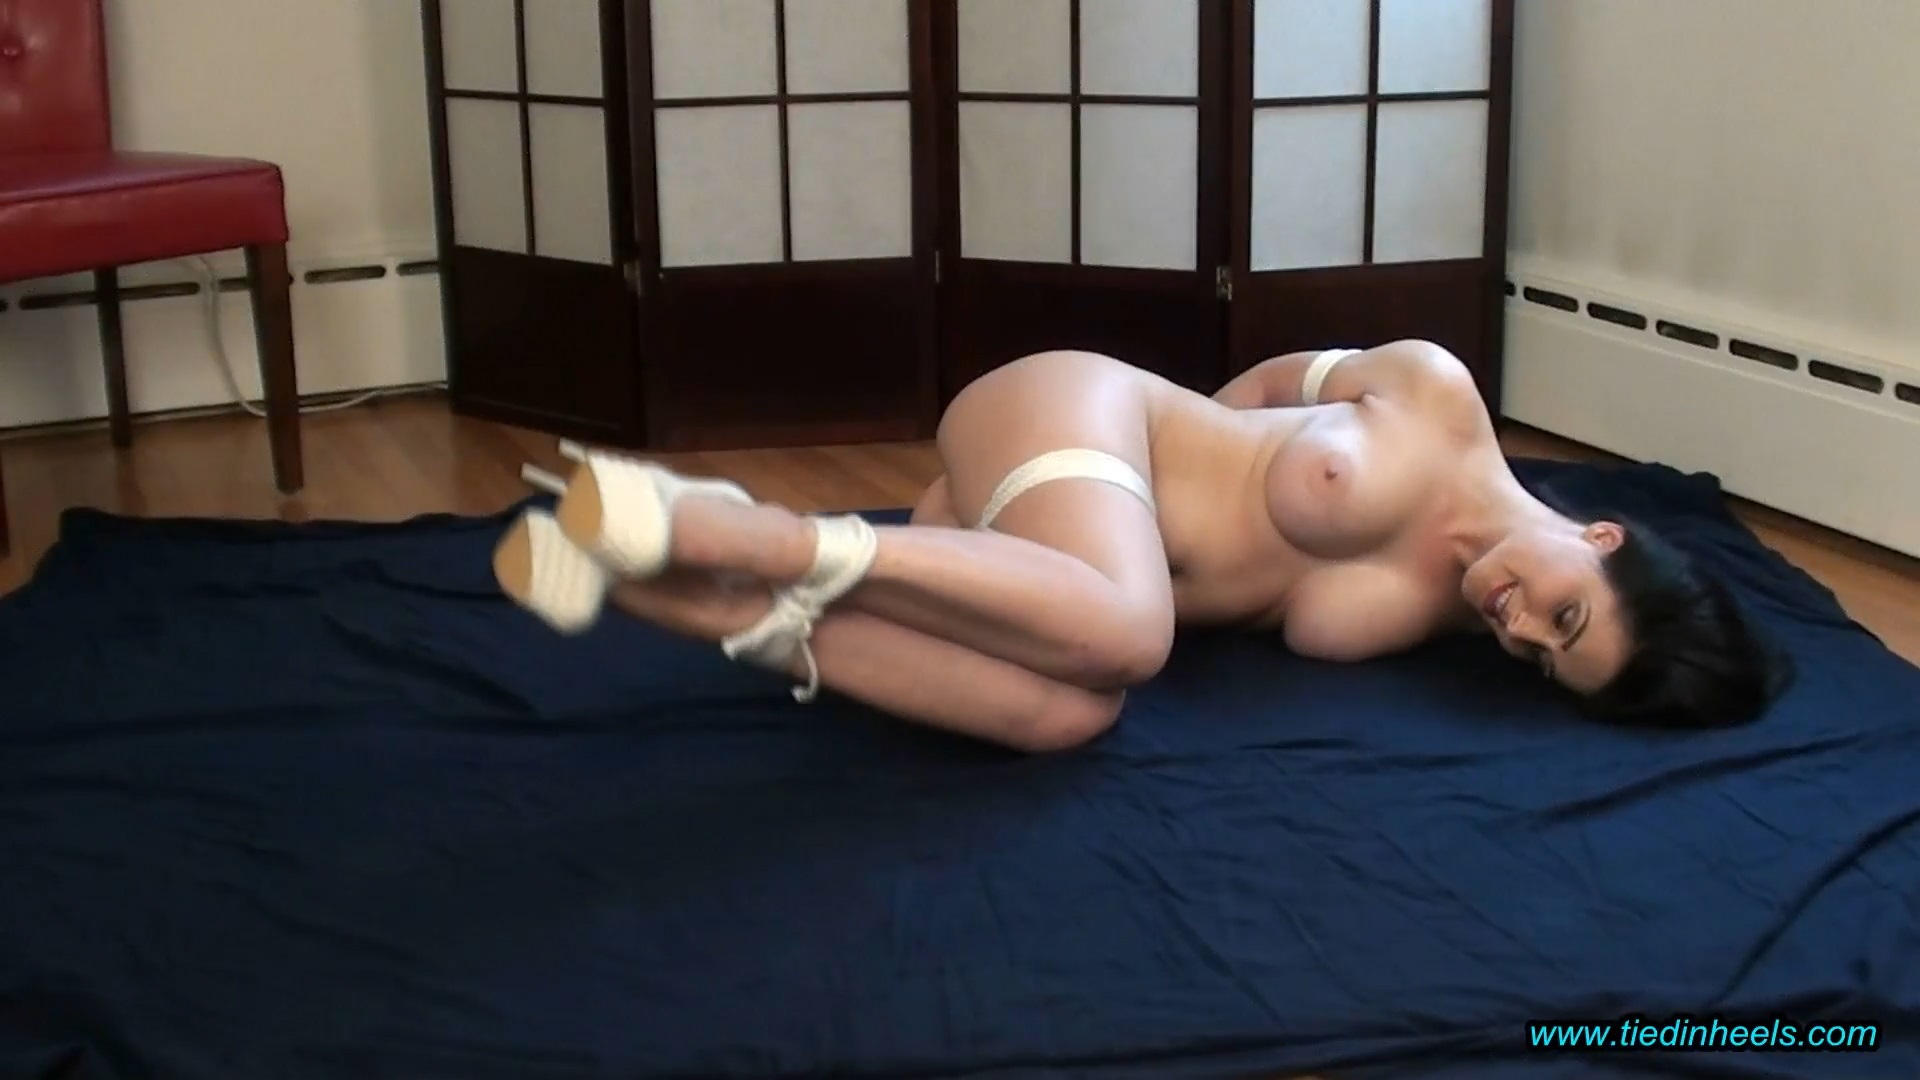 Tilly McReese_Tied Naked in Heels